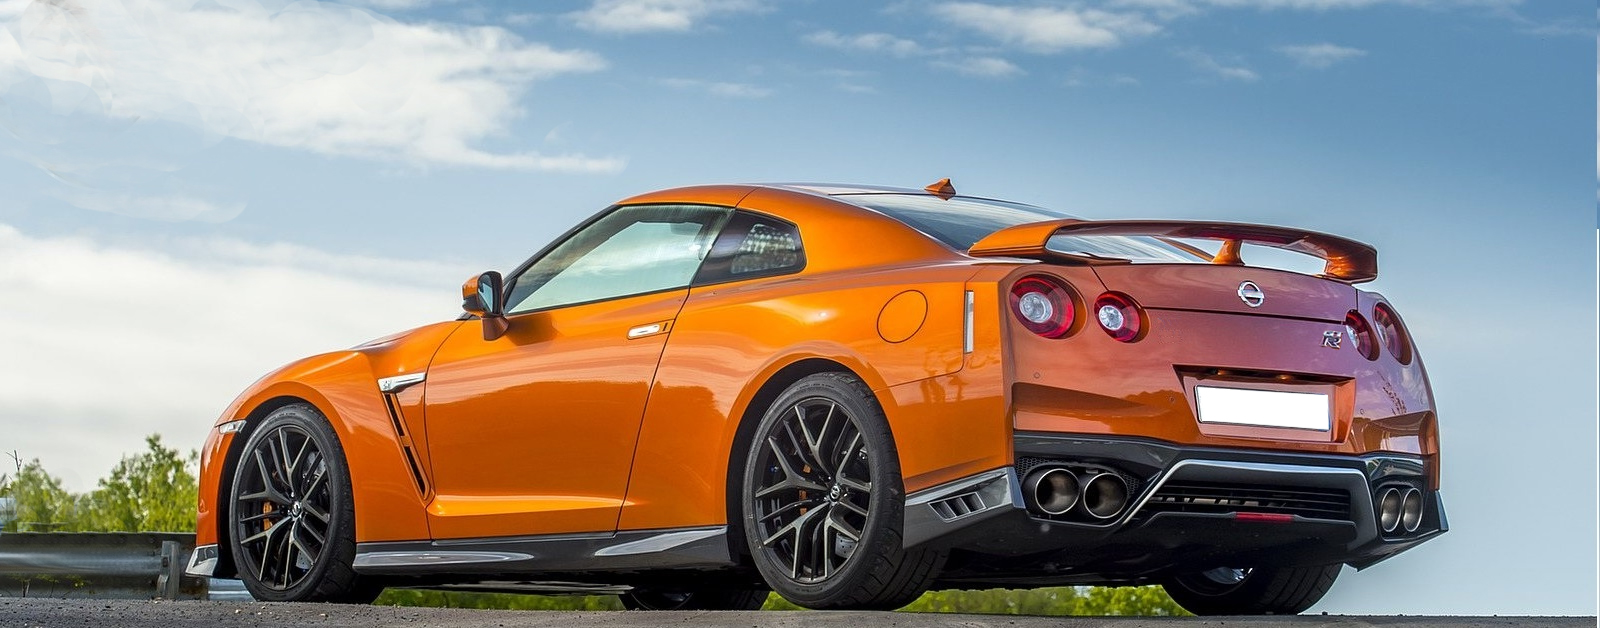 Nissan Gtr Hire Sports Car Hire Supercar Hire Oasis Limo